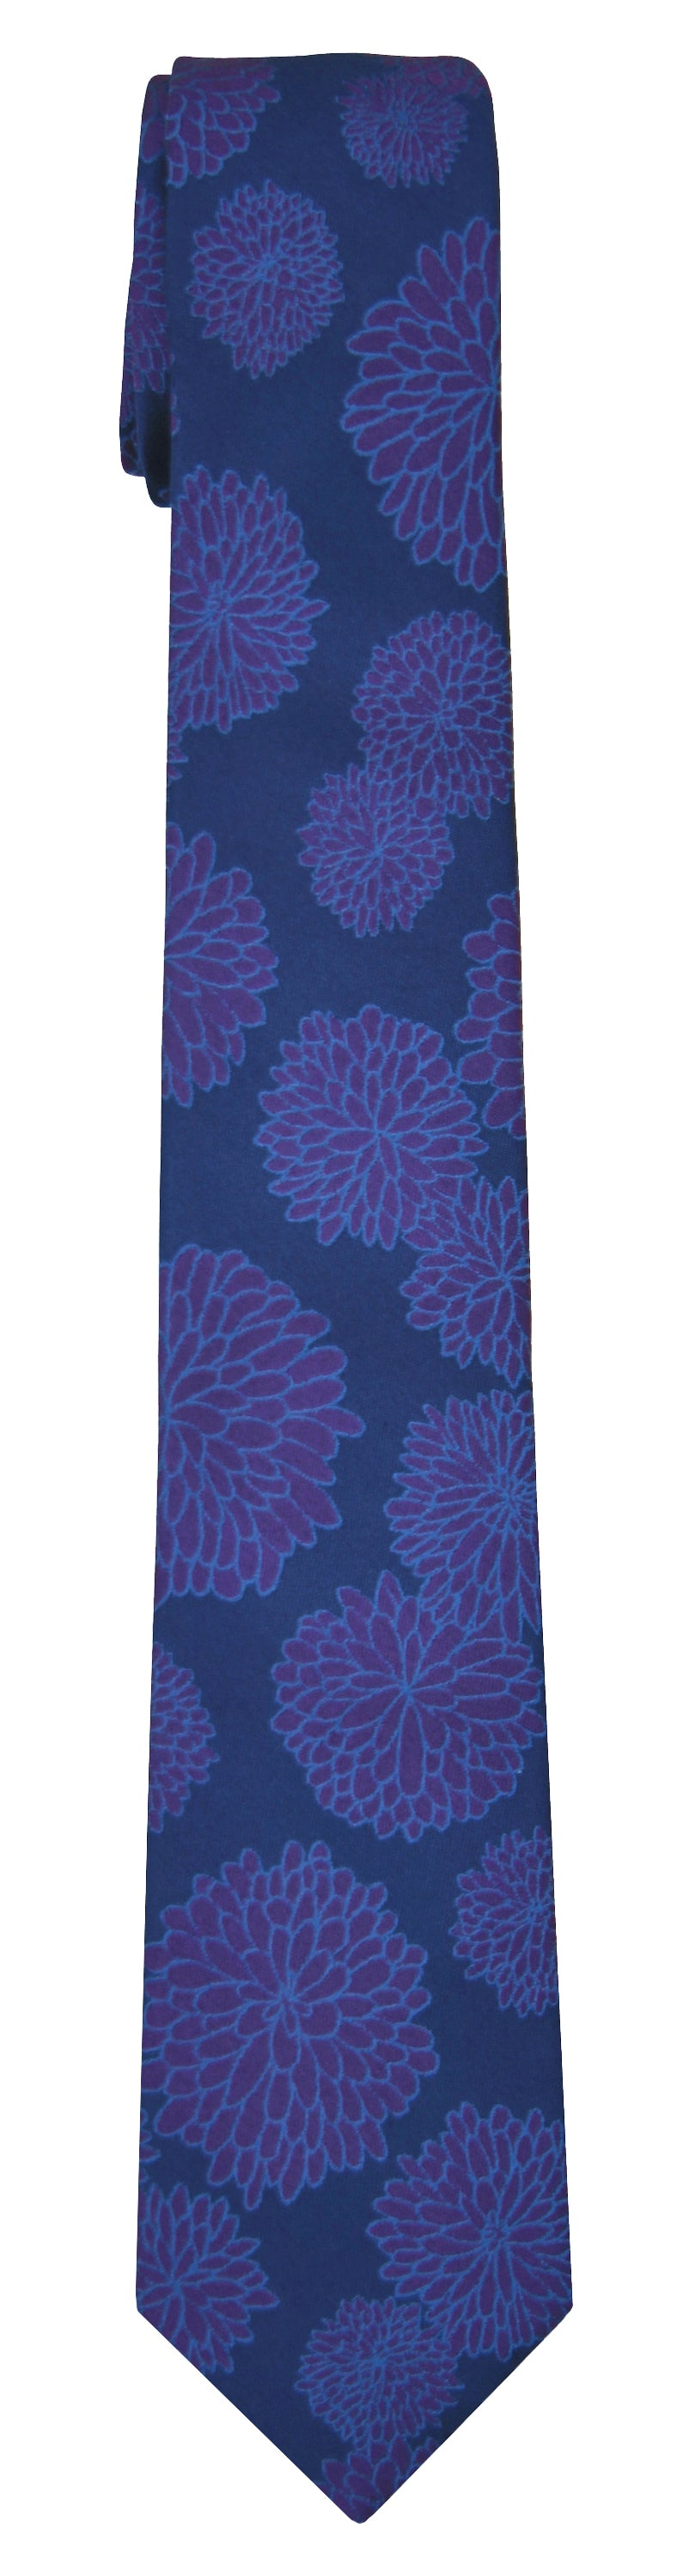 Mimi Fong Mums Tie in Royal & Purple